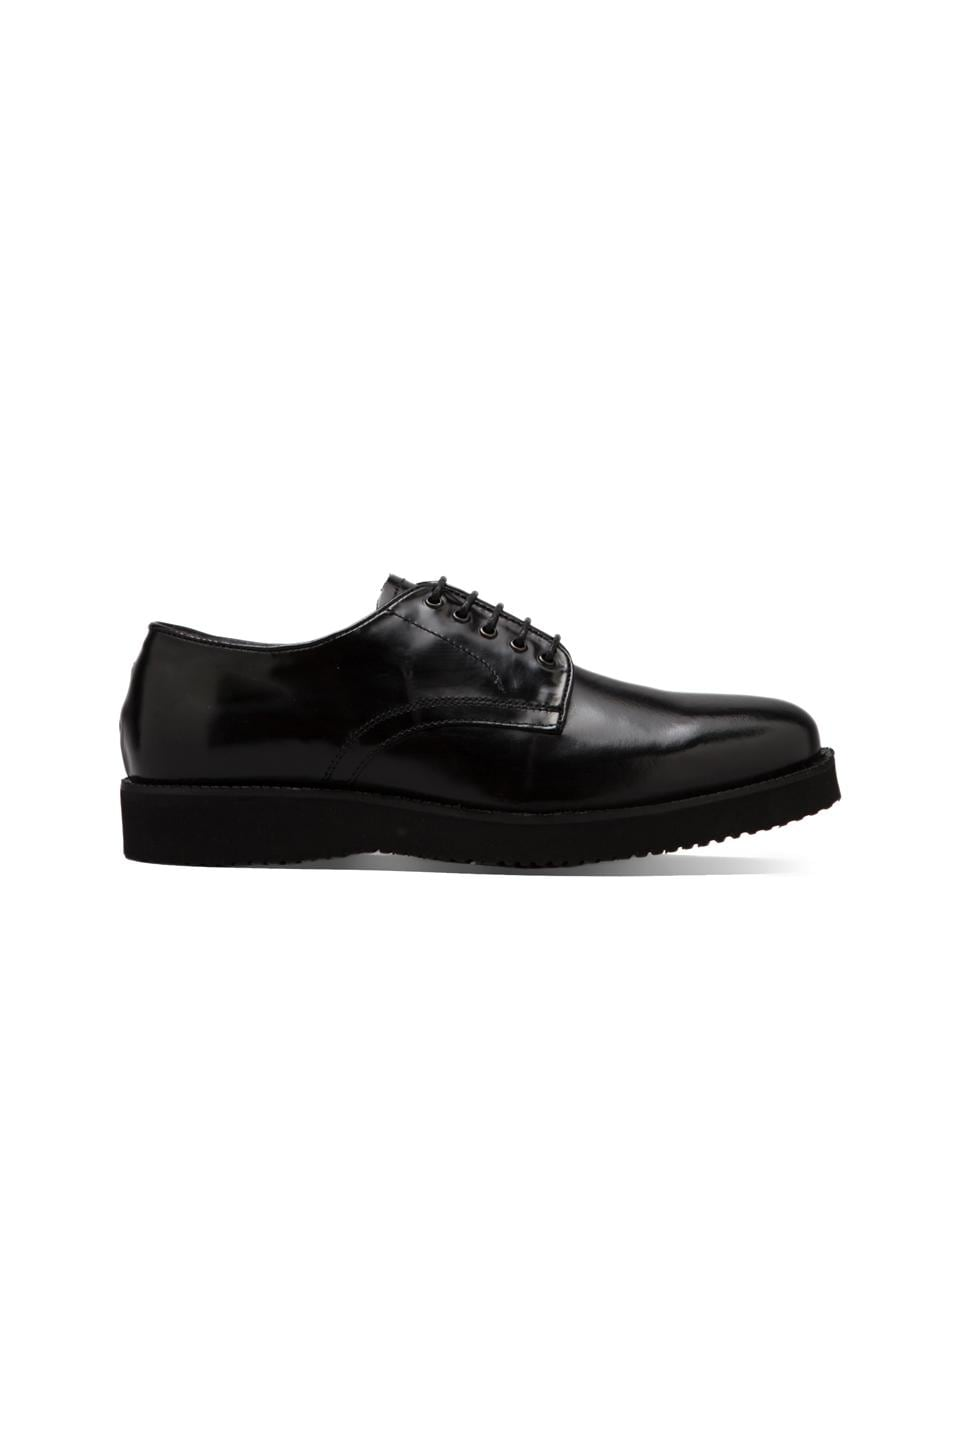 H by Hudson Richmond Hi Shine in Black